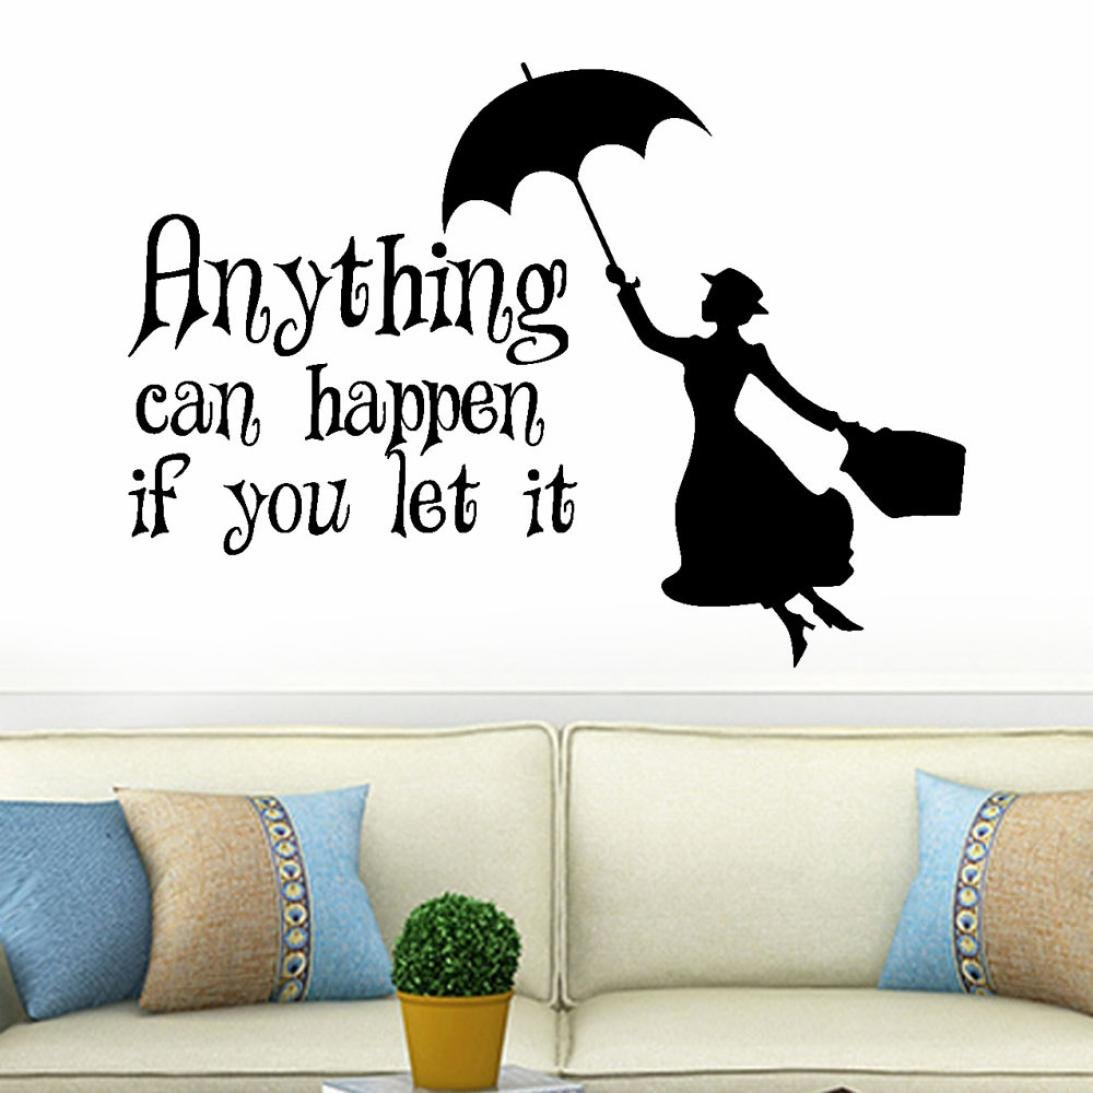 Wall Sticker Yezijin, Anything Can Happen if you Let it Art Mural Home Room Bedroom Office Decor Wall Stickers